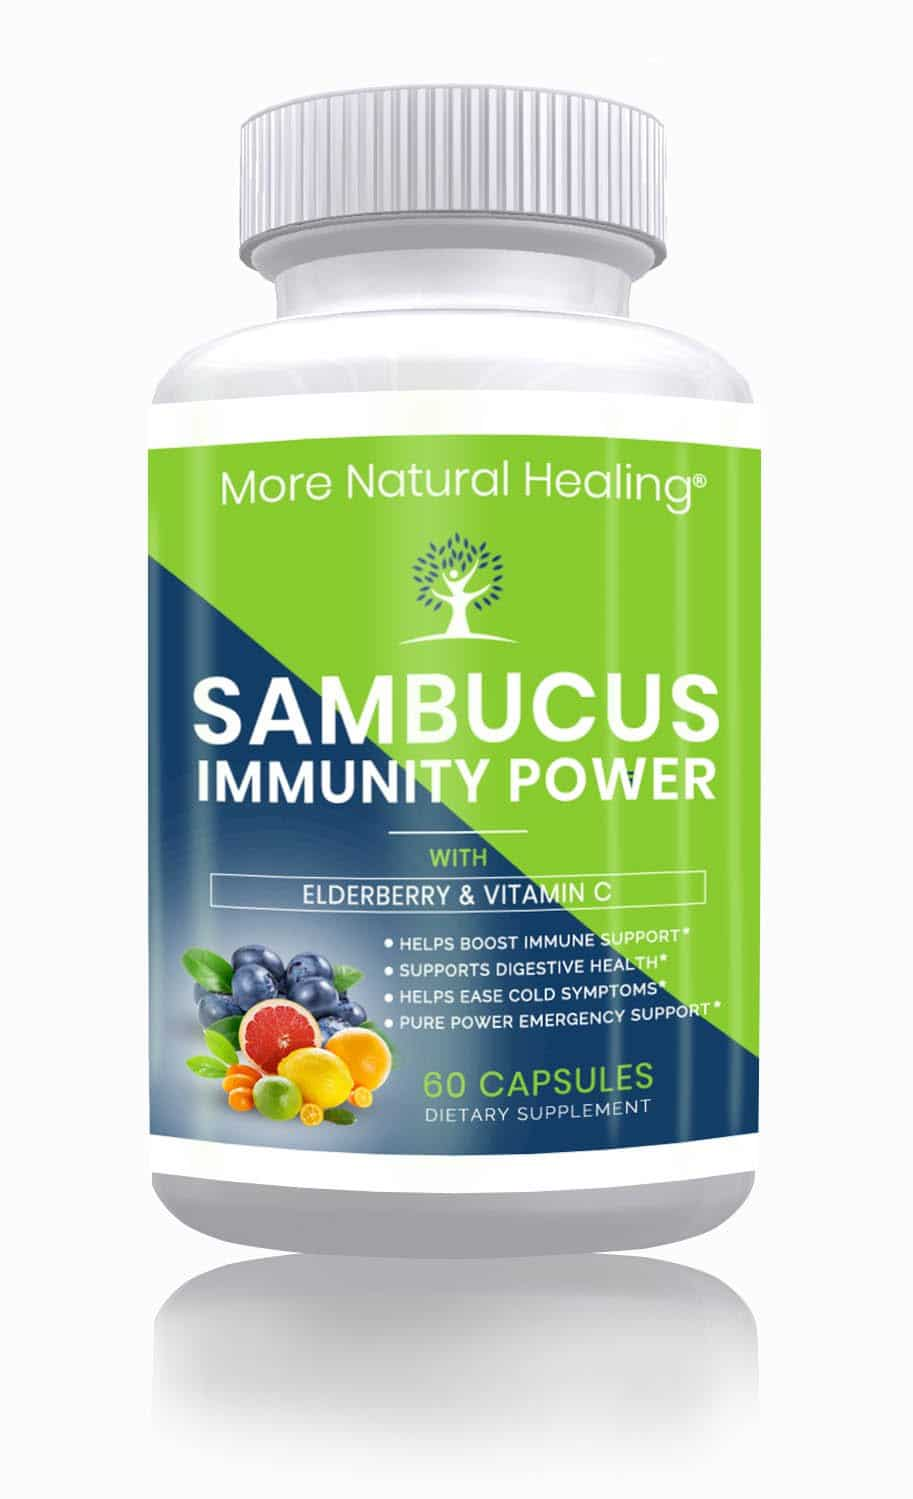 Sambucus Immunity Power + Vitamin C Elderberry Capsules for Immune Support - More Natural Healing